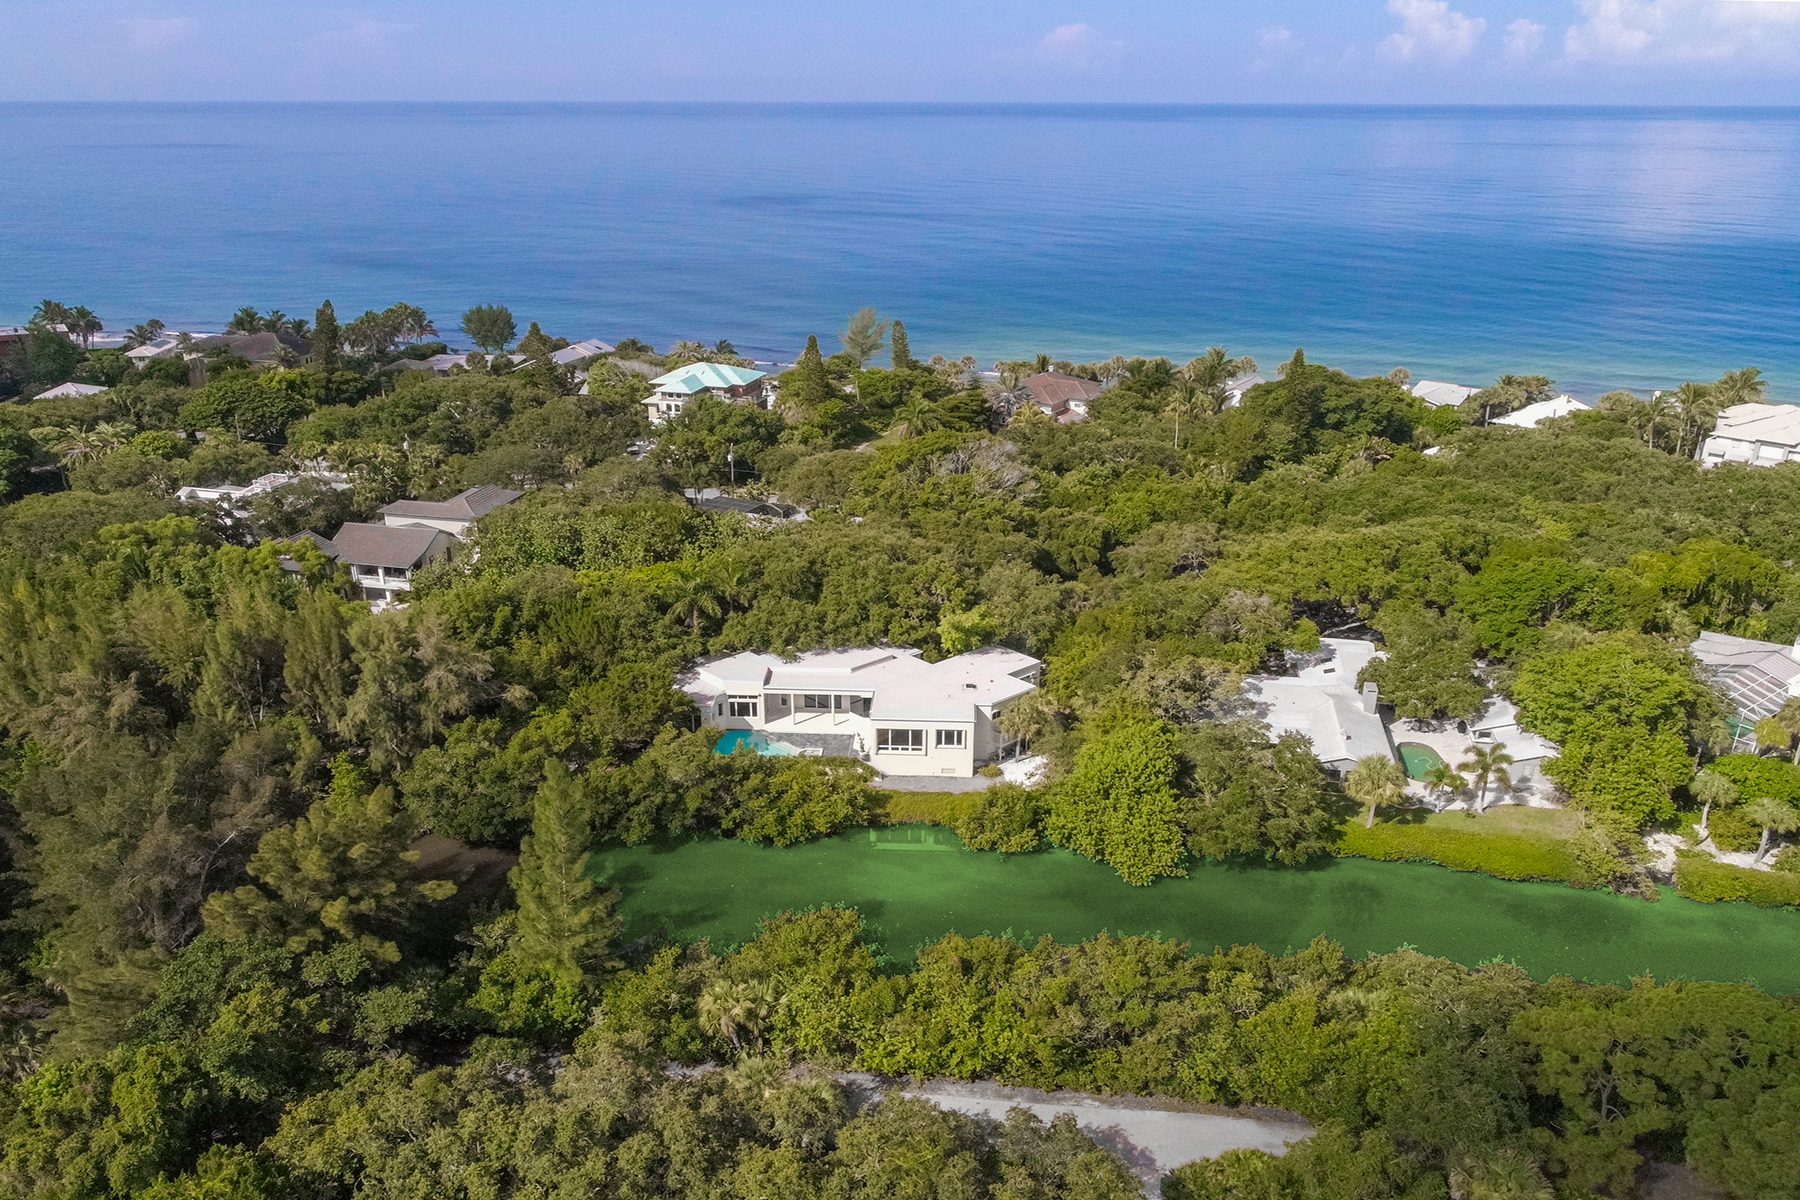 Single Family Home for Sale at SANDERLING CLUB 7259 Turnstone Rd, Sarasota, Florida, 34242 United States